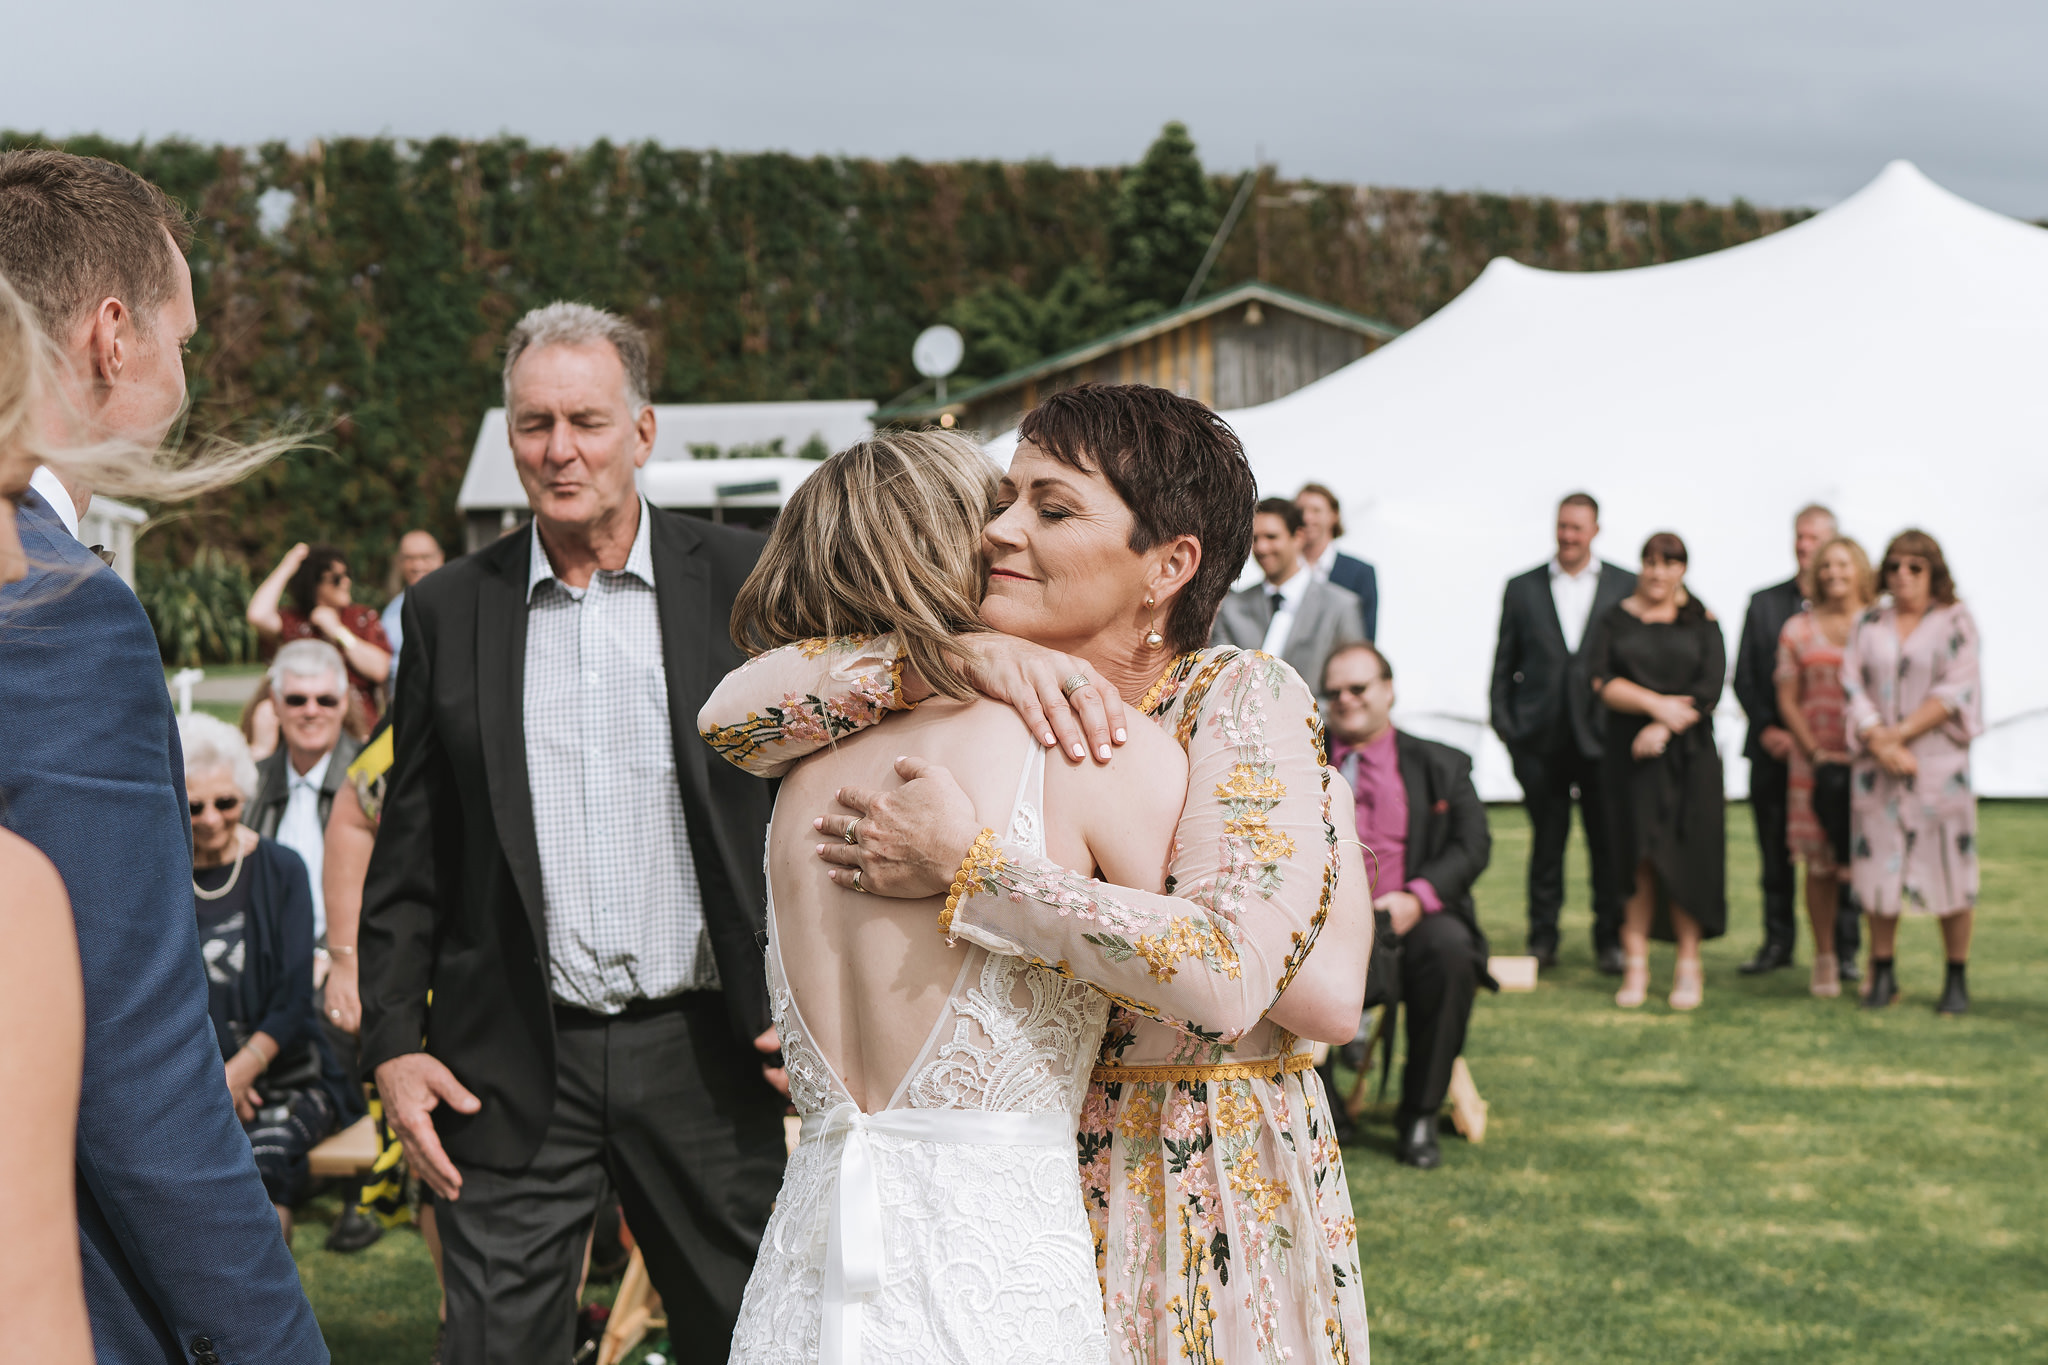 newfound-s-a-tauranga-new-zealand-wedding-photography-513